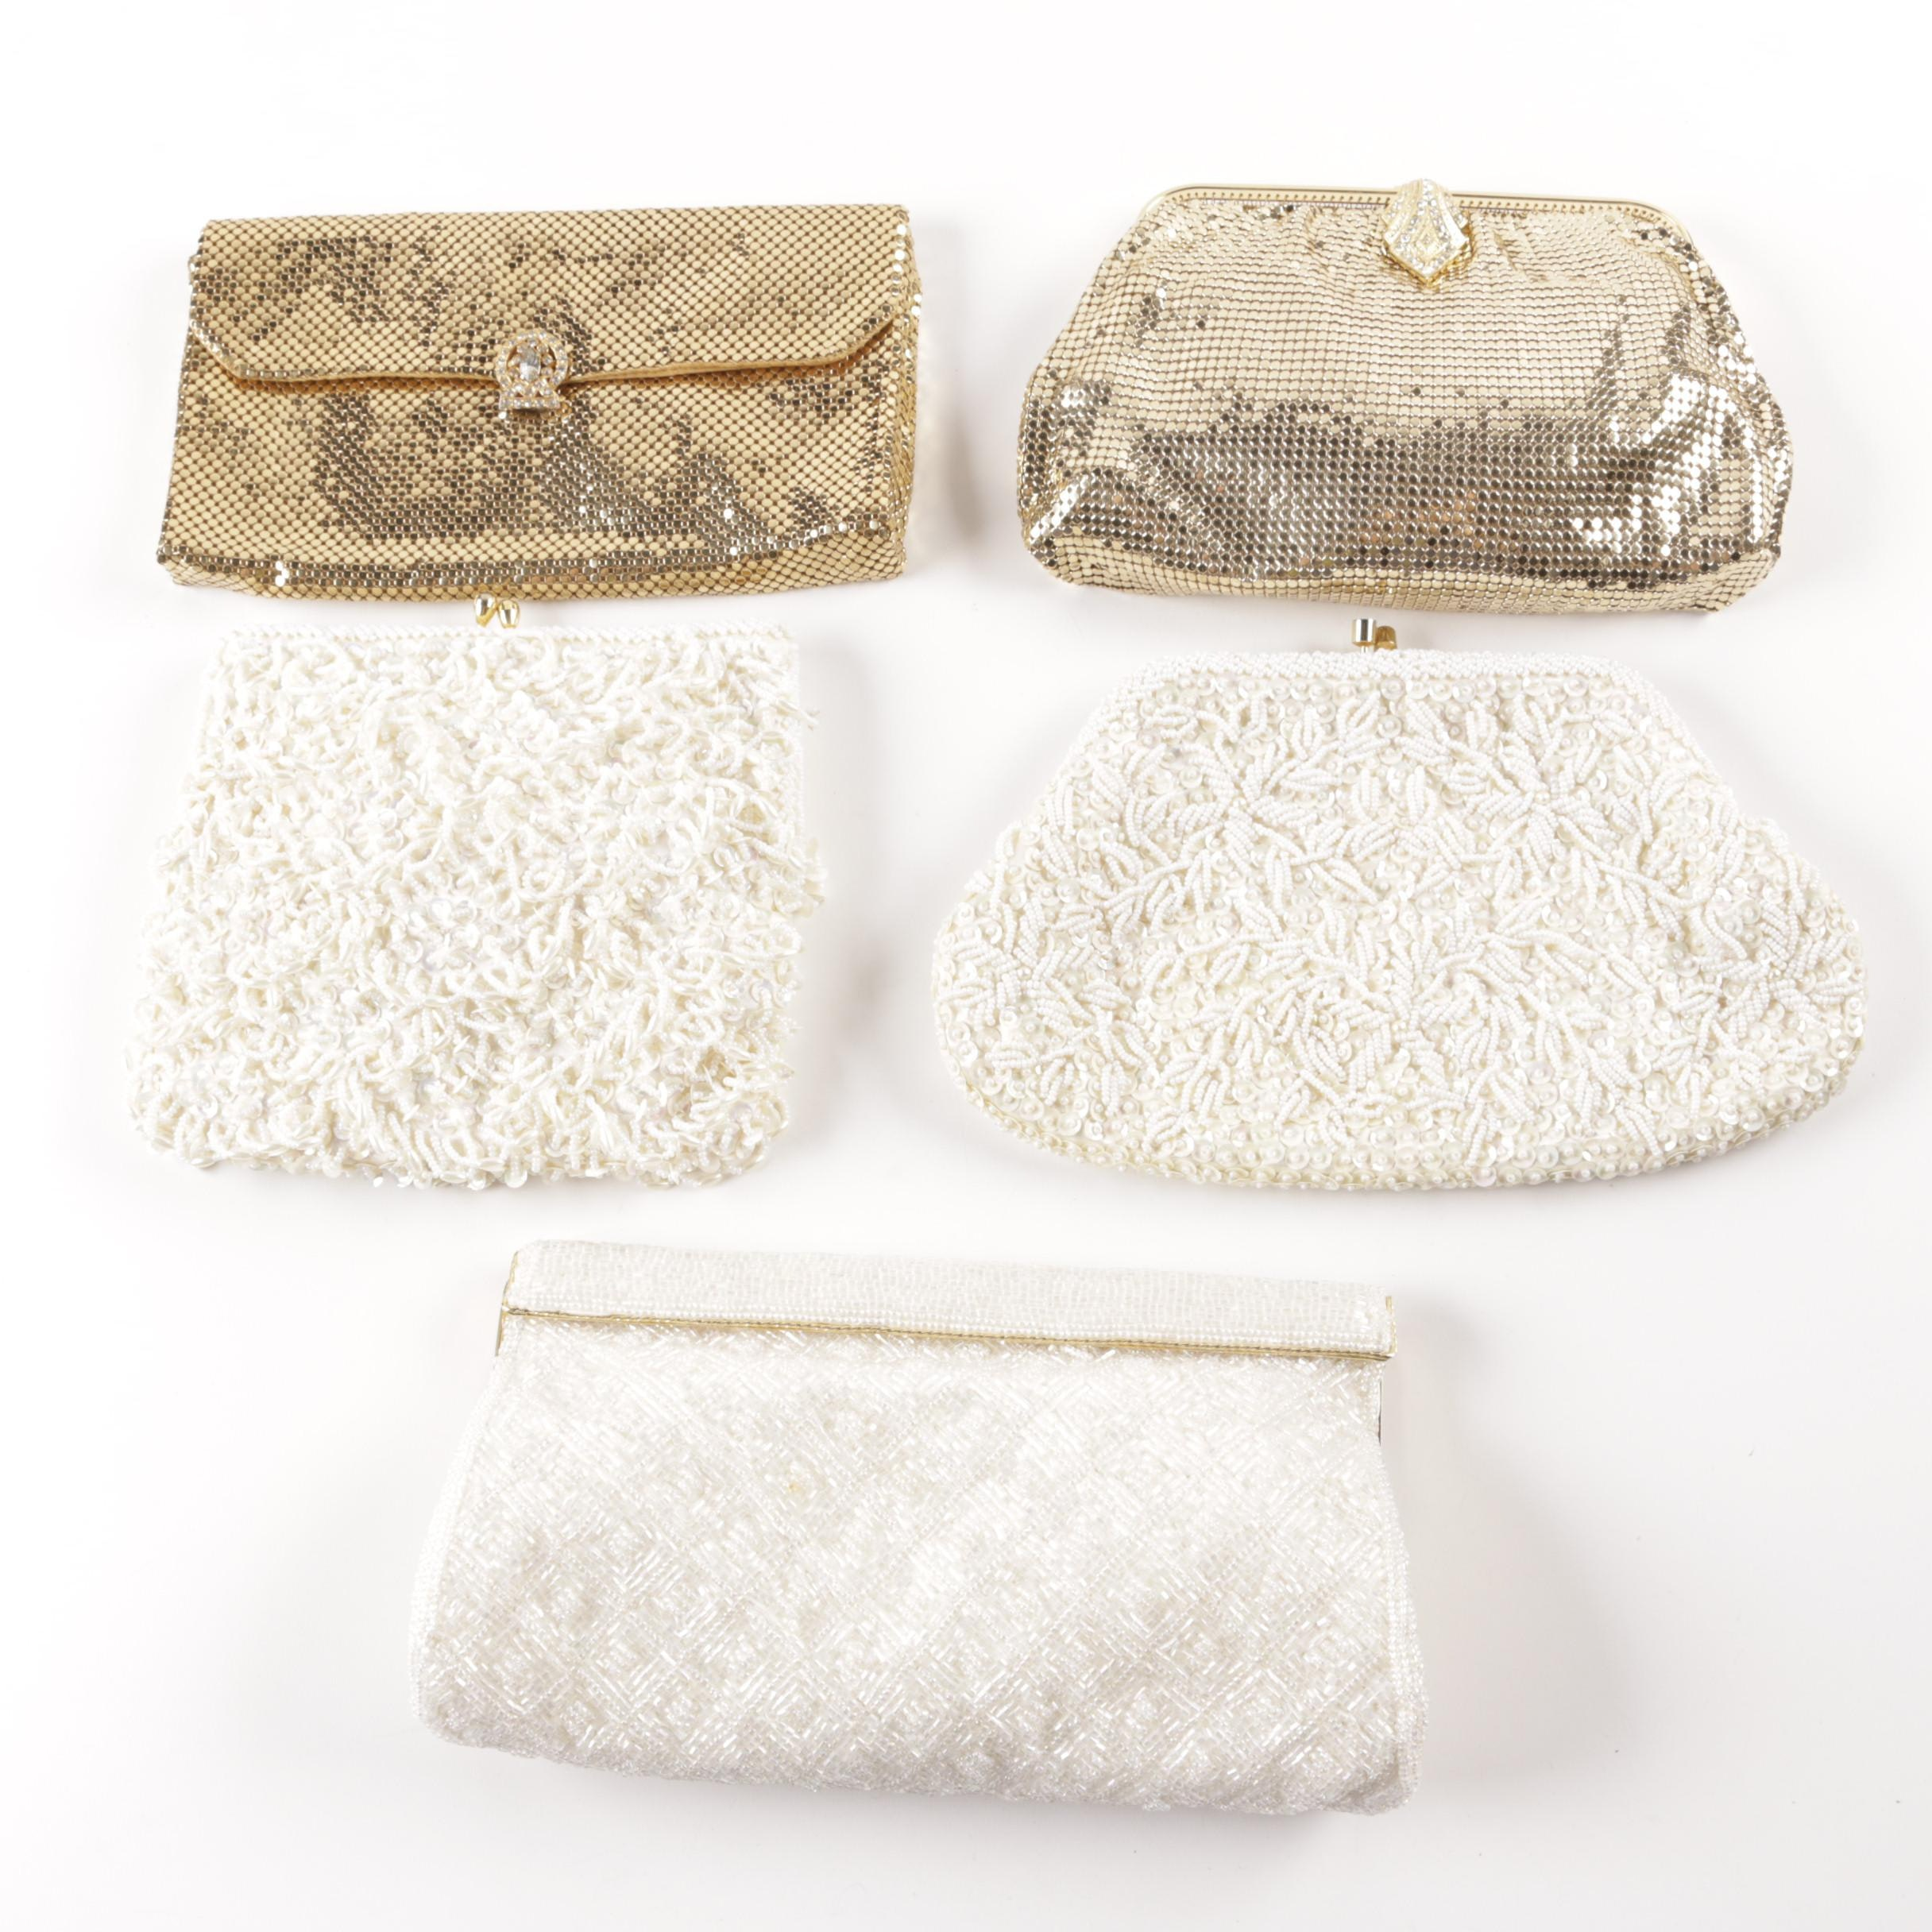 Vintage Embellished Clutch Handbags Including Whiting & Davis Co.